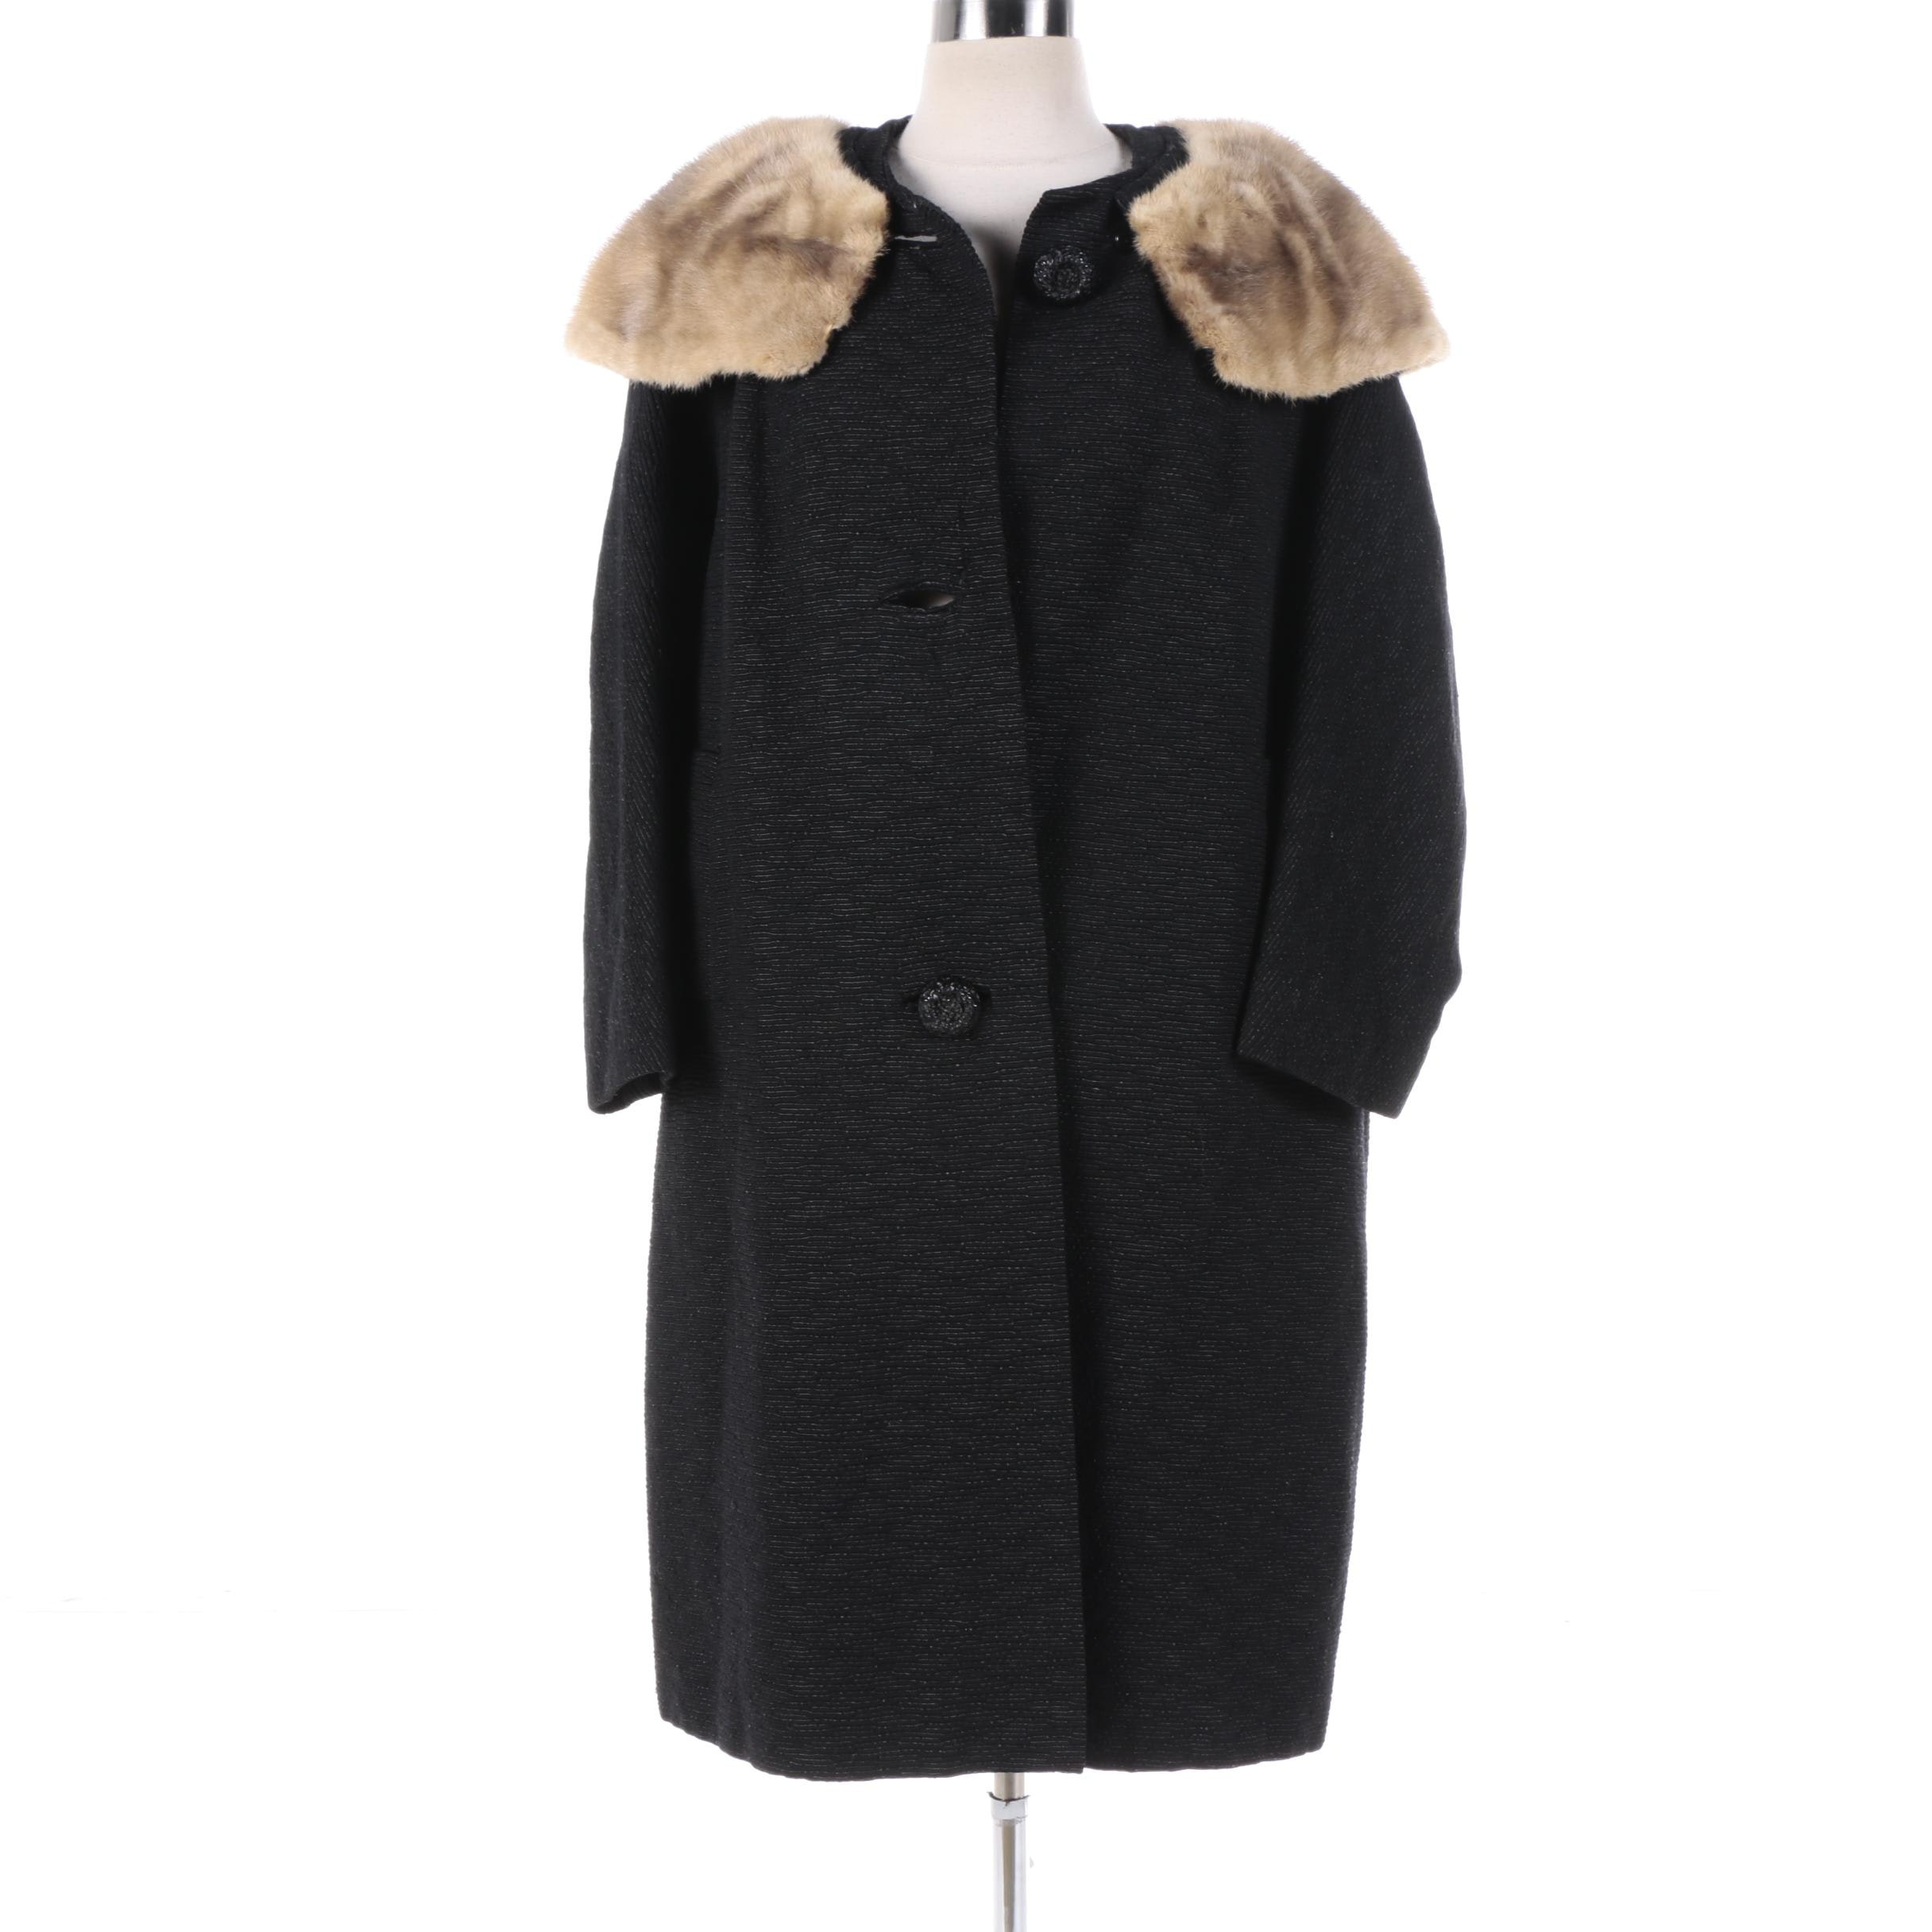 Women's Vintage Textured Black Hand-Tailored Coat with Mink Fur Cape Collar